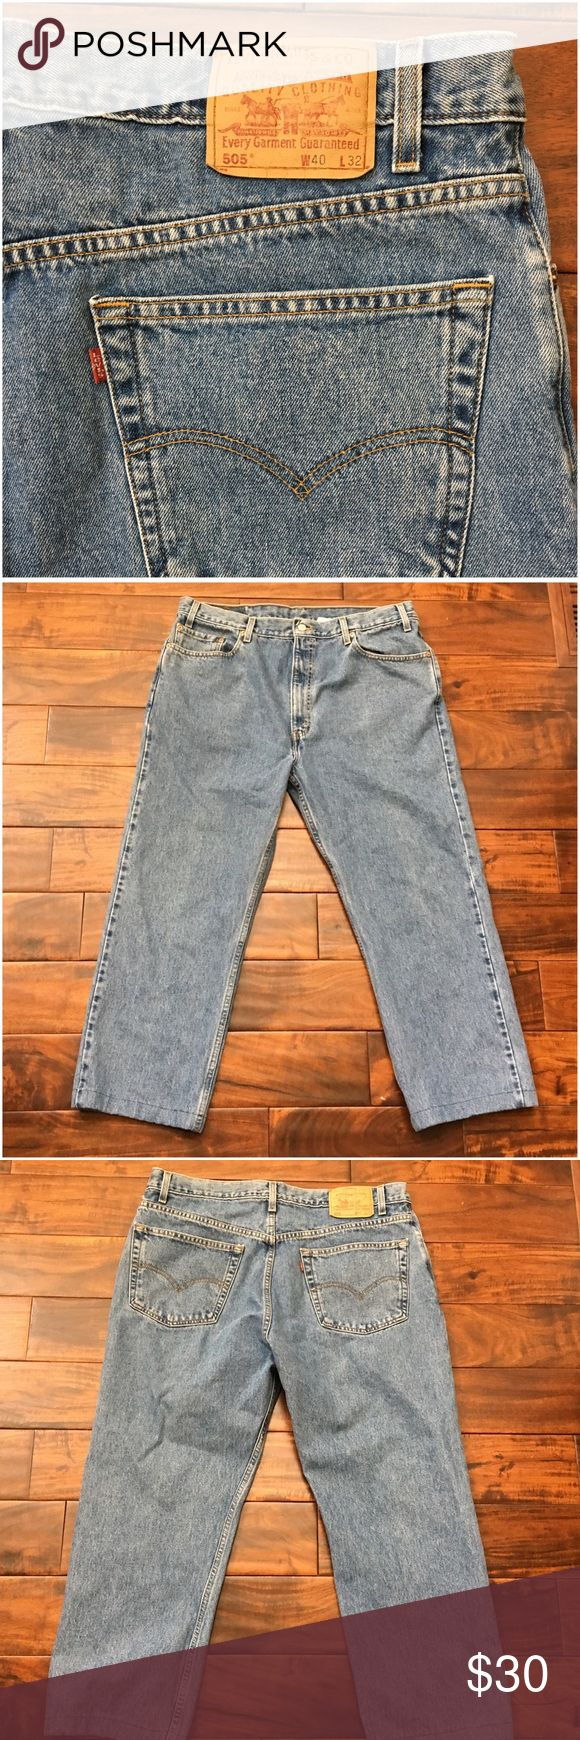 """Levi's 505 Regular Fit Straight Leg Jeans EUC Inseam has been shorted to 25 1/2"""".   Ask ALL questions before buying, sales are final. I try to describe the items I sell as accurately as I can but if I missed something, please LMK FIRST so we can resolve it before you leave < 5🌟rating.   🚫TRADES/OFFLINE TRANSACTIONS  🚫LOWBALLING (Please consider the 20% PM fee) ✅Use OFFER BUTTON please  🚭 & 🐶 Free home Levi's Jeans Straight"""